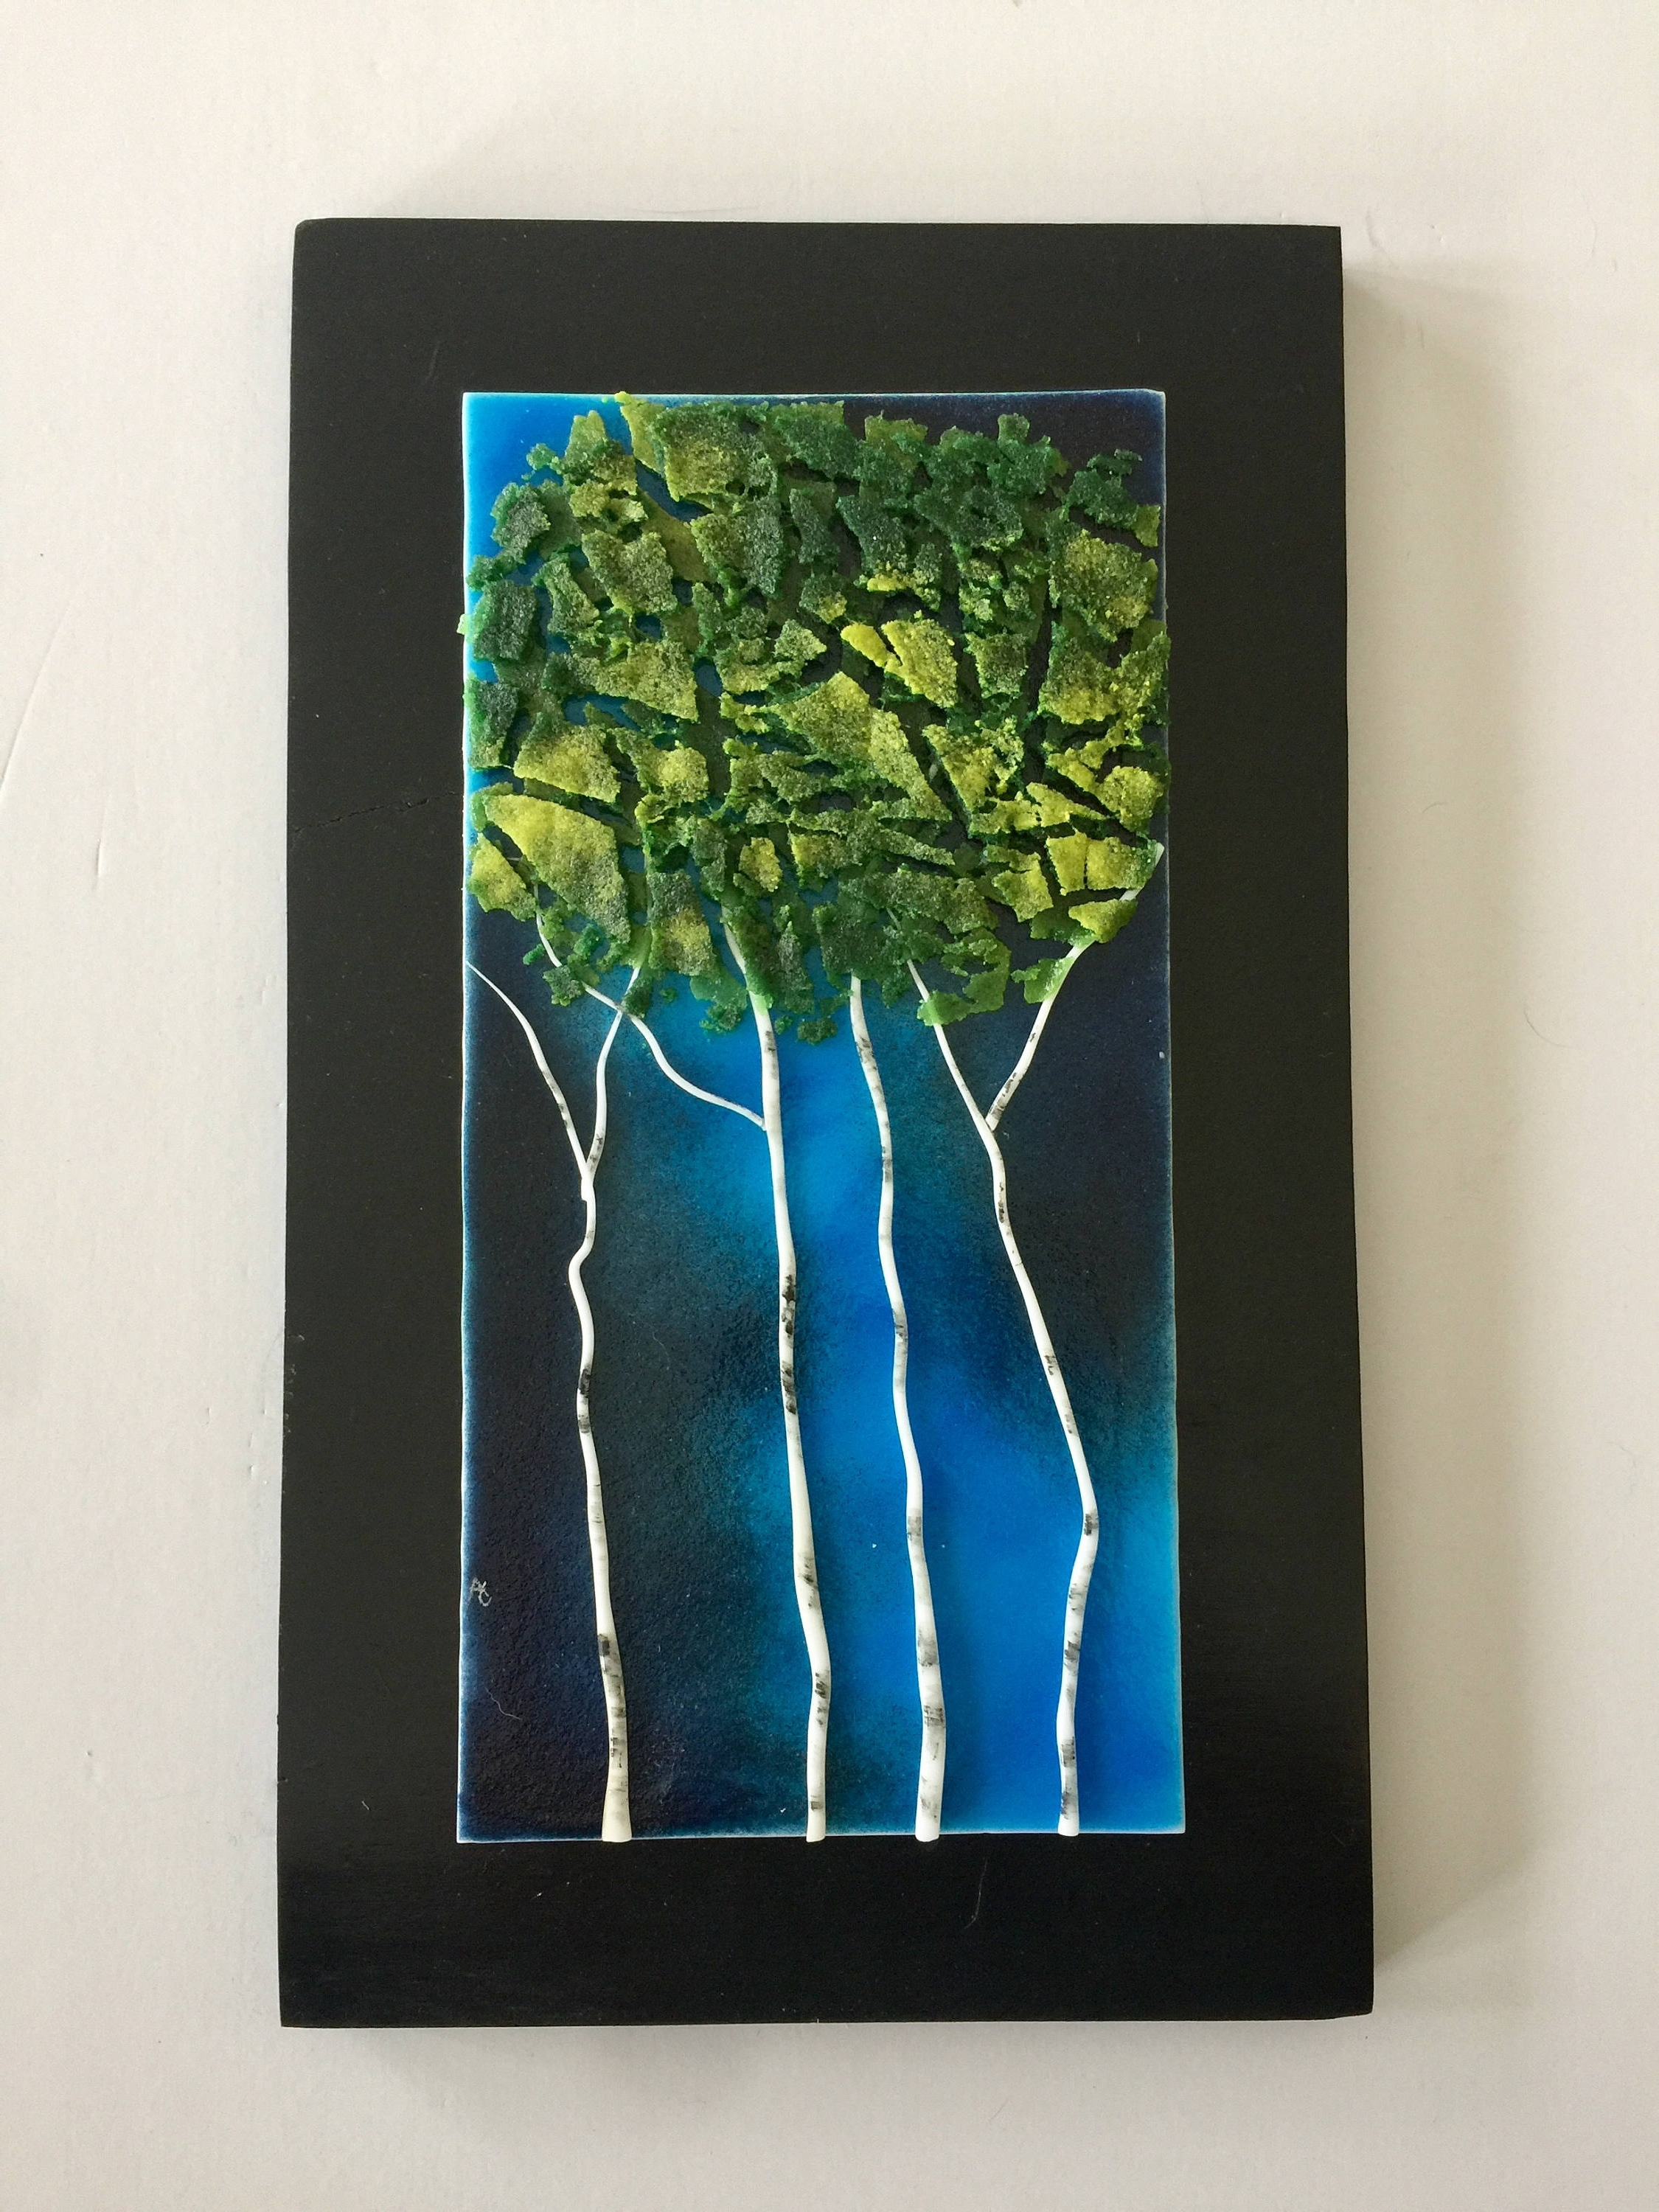 Most Recent Fused Glass Art, Fused Glass, Handmade Fused Glass,fused Glass Pertaining To Cheap Fused Glass Wall Art (View 7 of 15)